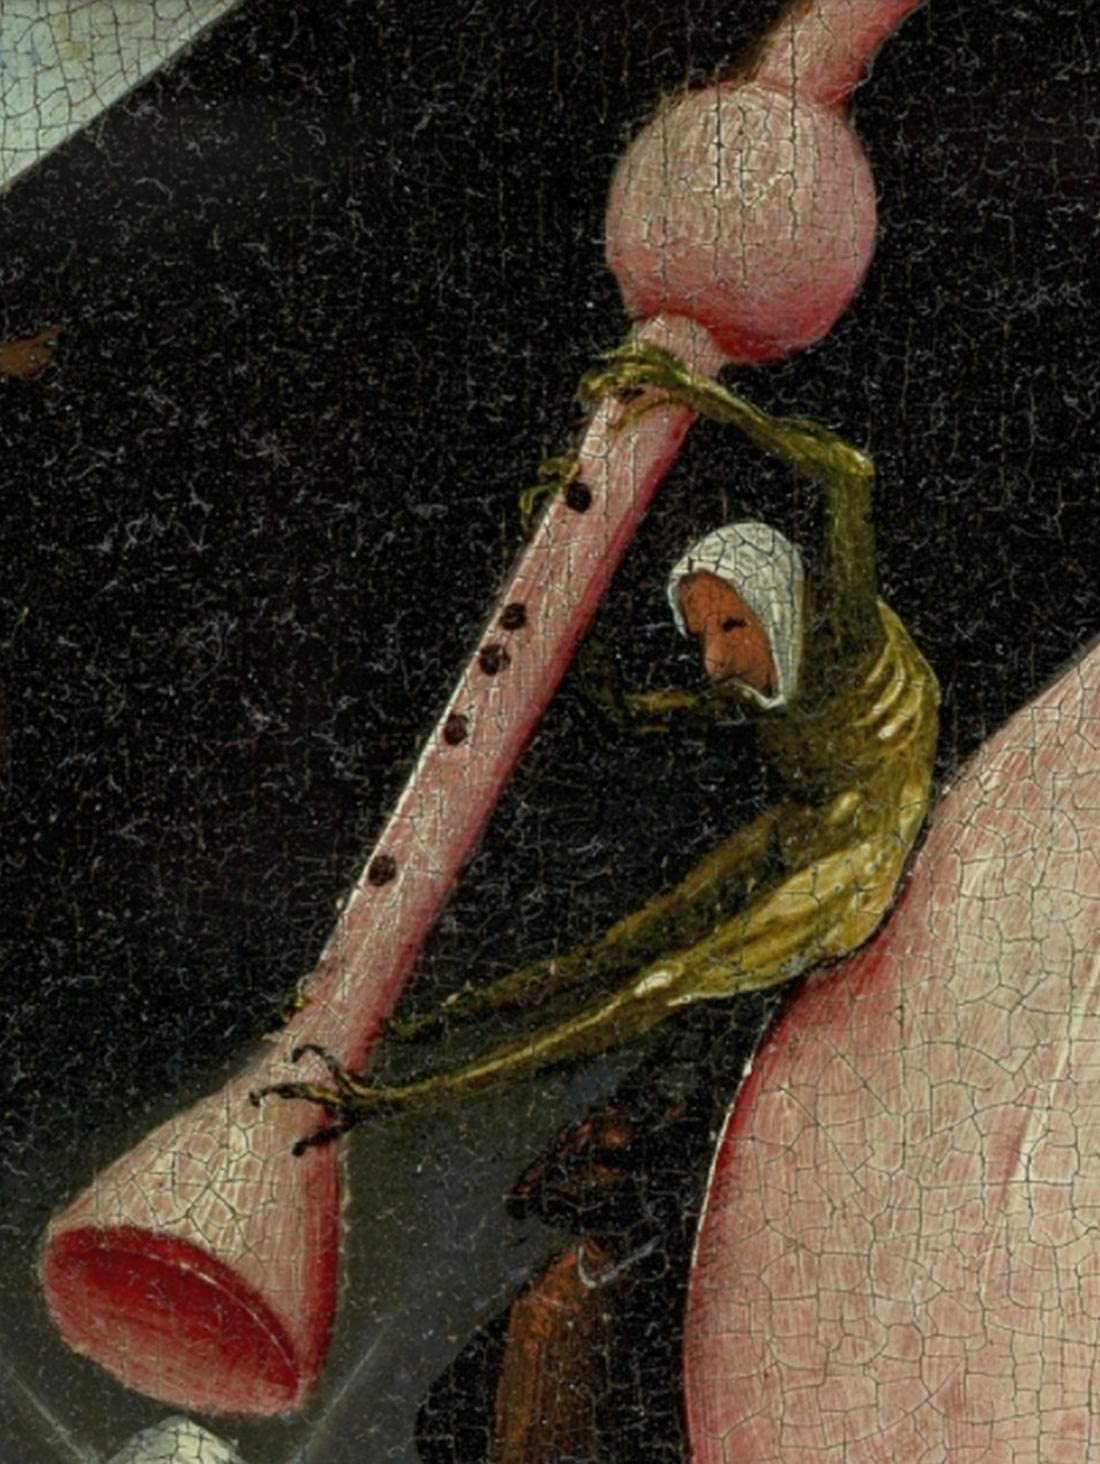 Bosch Hieronymus The Garden of Earthly Delights Right Panel Detail Bagpipe Left Disk of Tree Man Puzzles Jigsaw 500 Piece